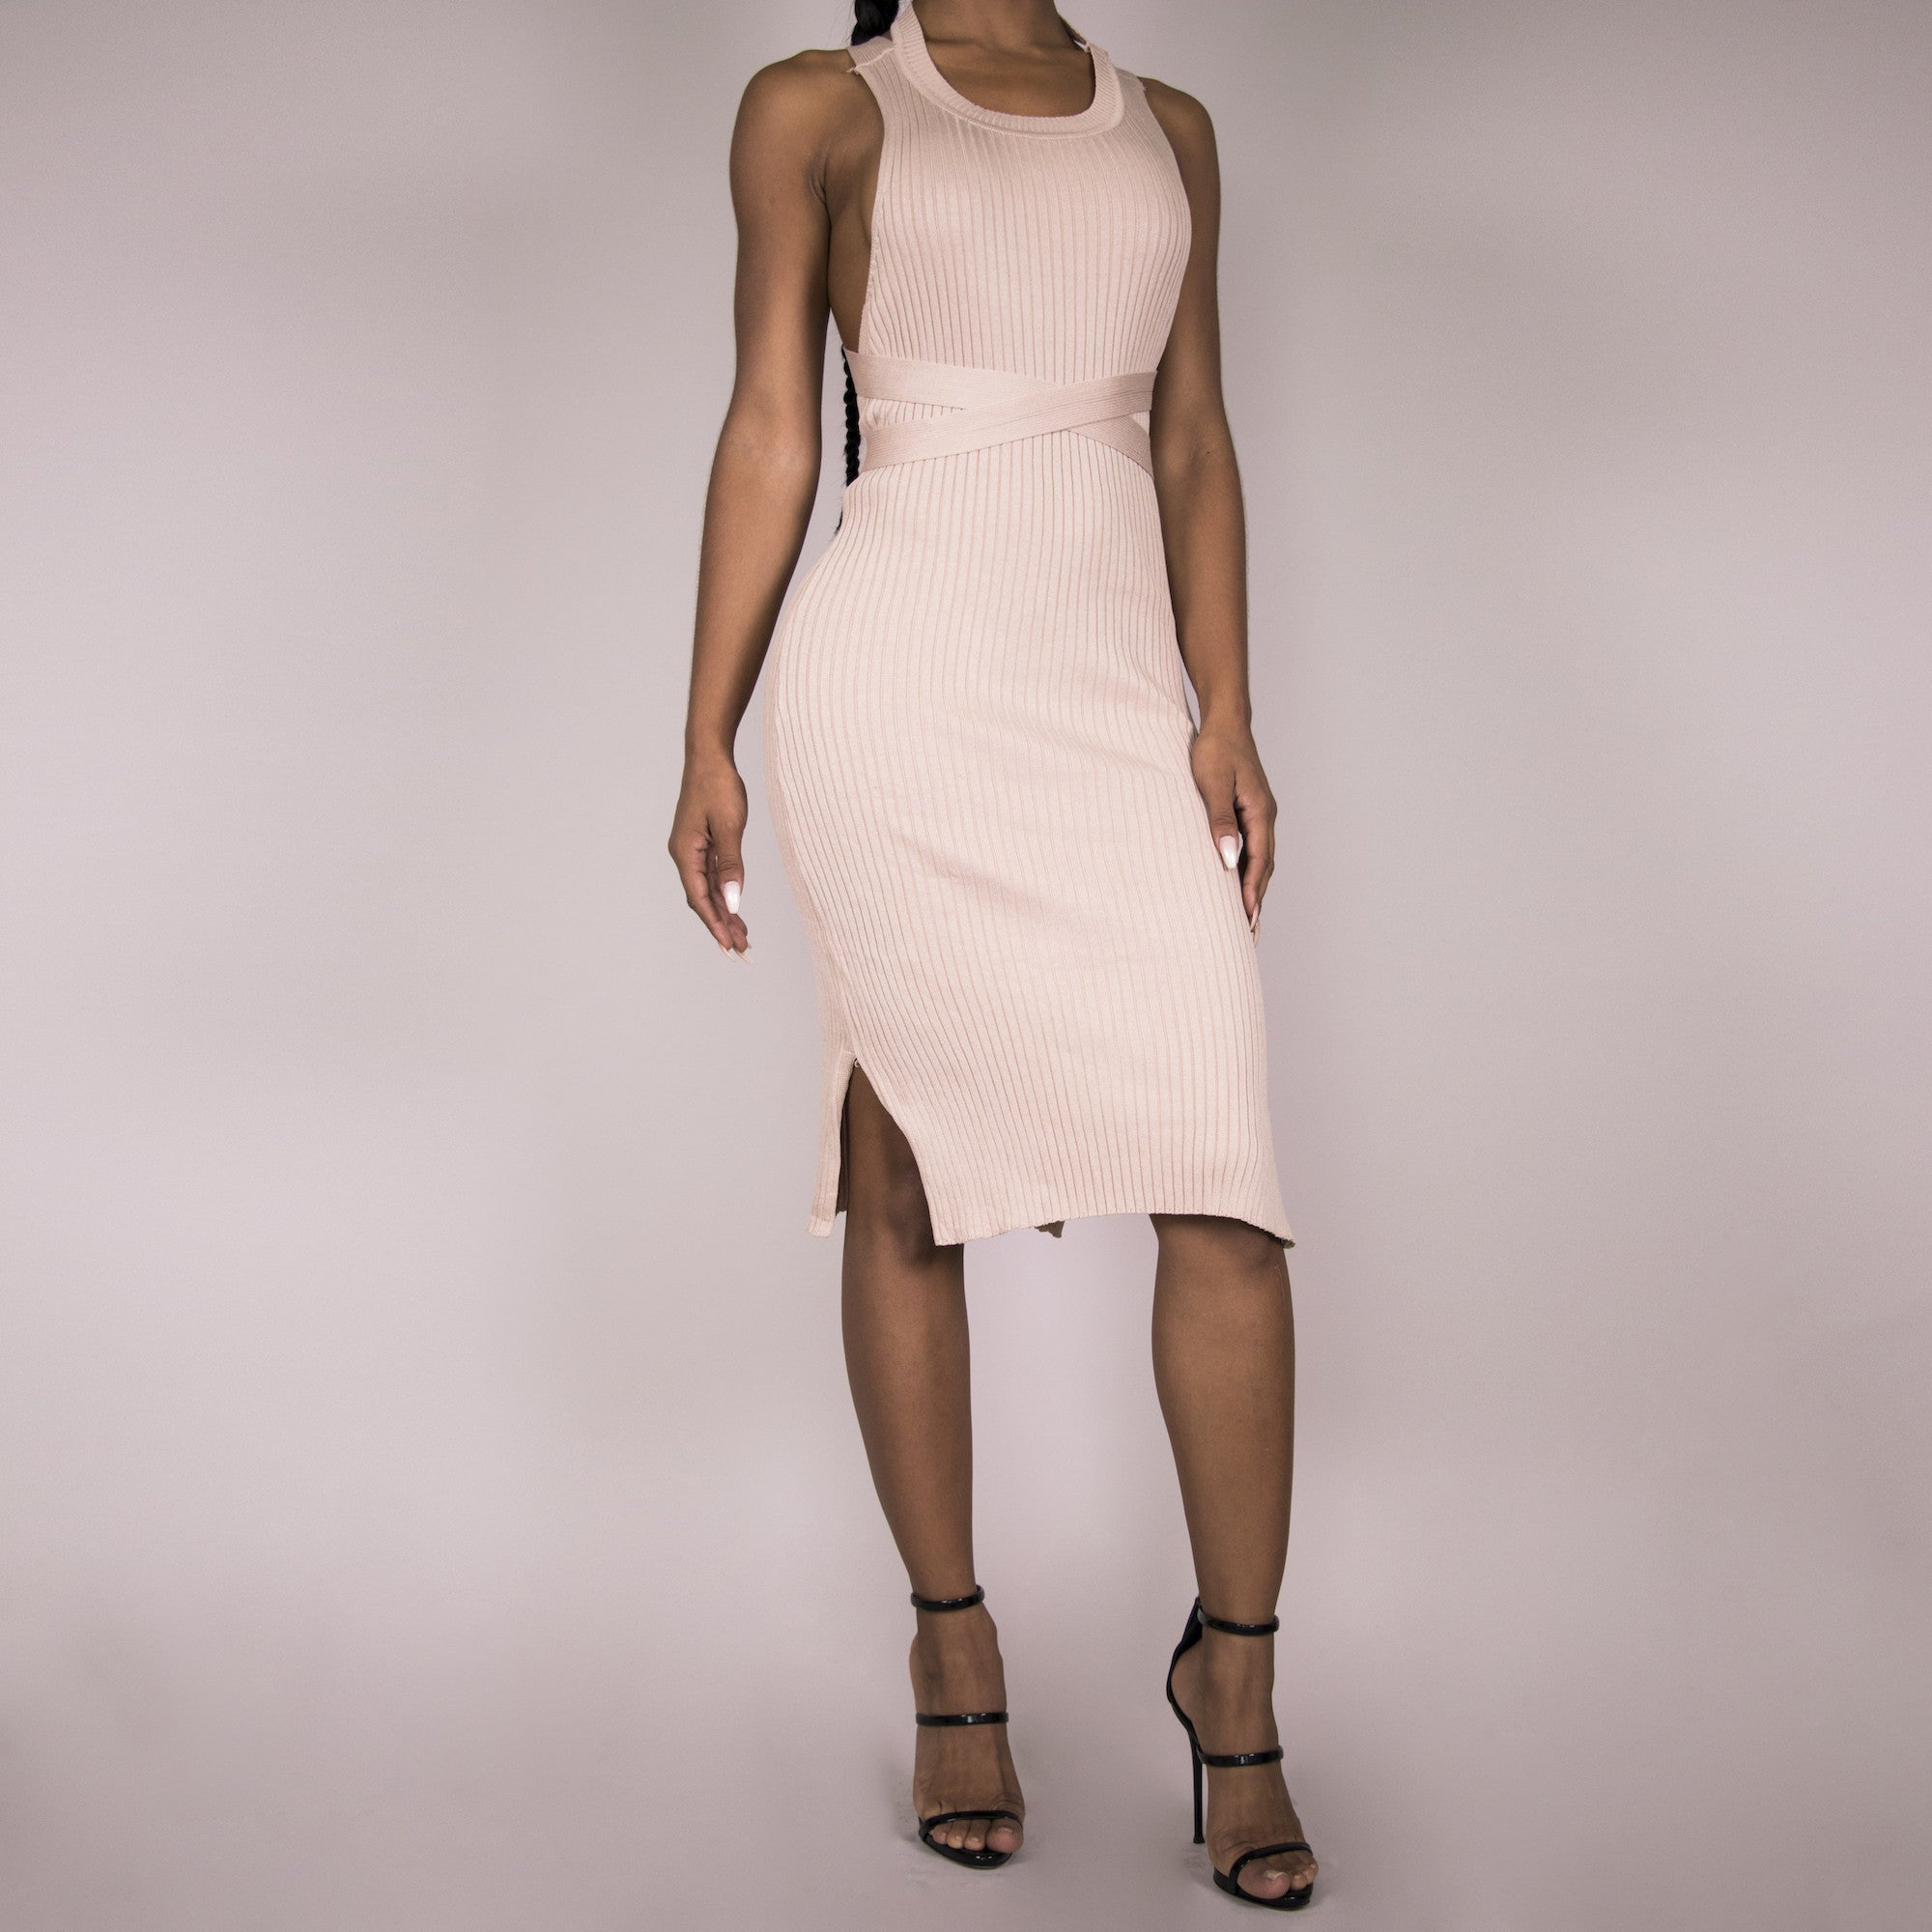 Brittany Bandage Dress - Blush Pink | Raregal